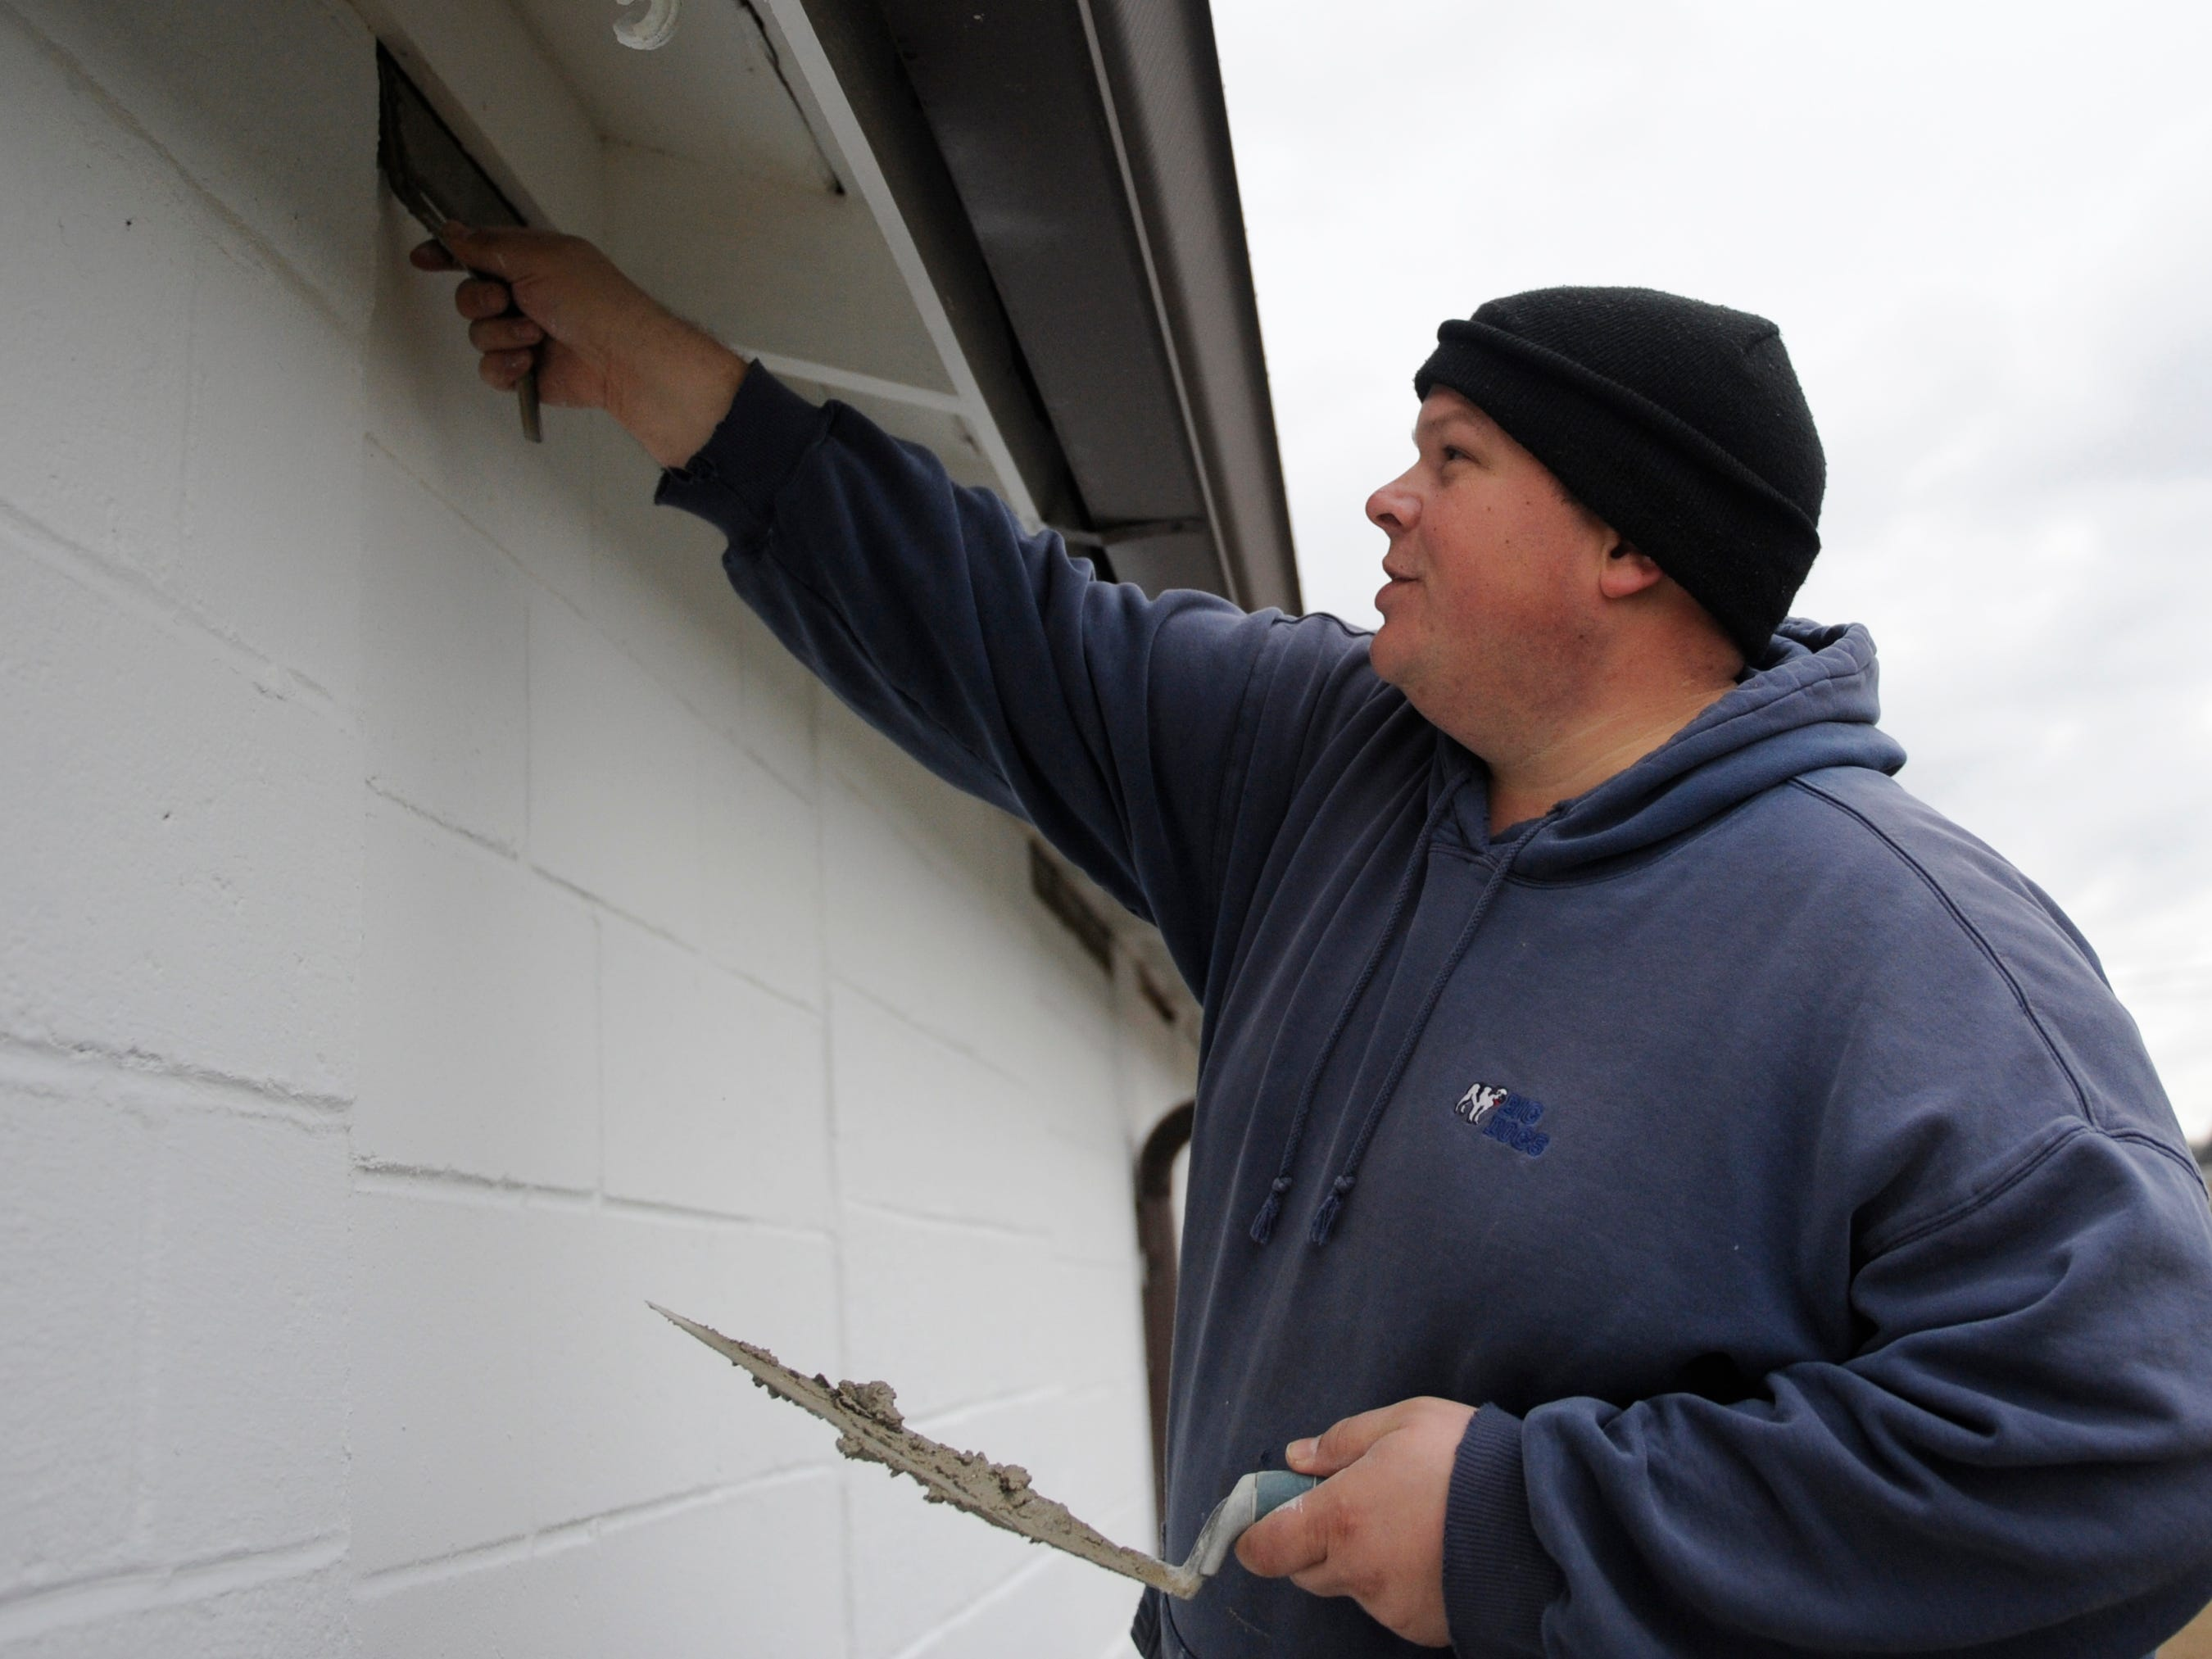 Steven England, Vineland Home Depot assistant manager and community captain, works on patching a wall with cement during a special building renovation event at Millville Army Airfield Museum.